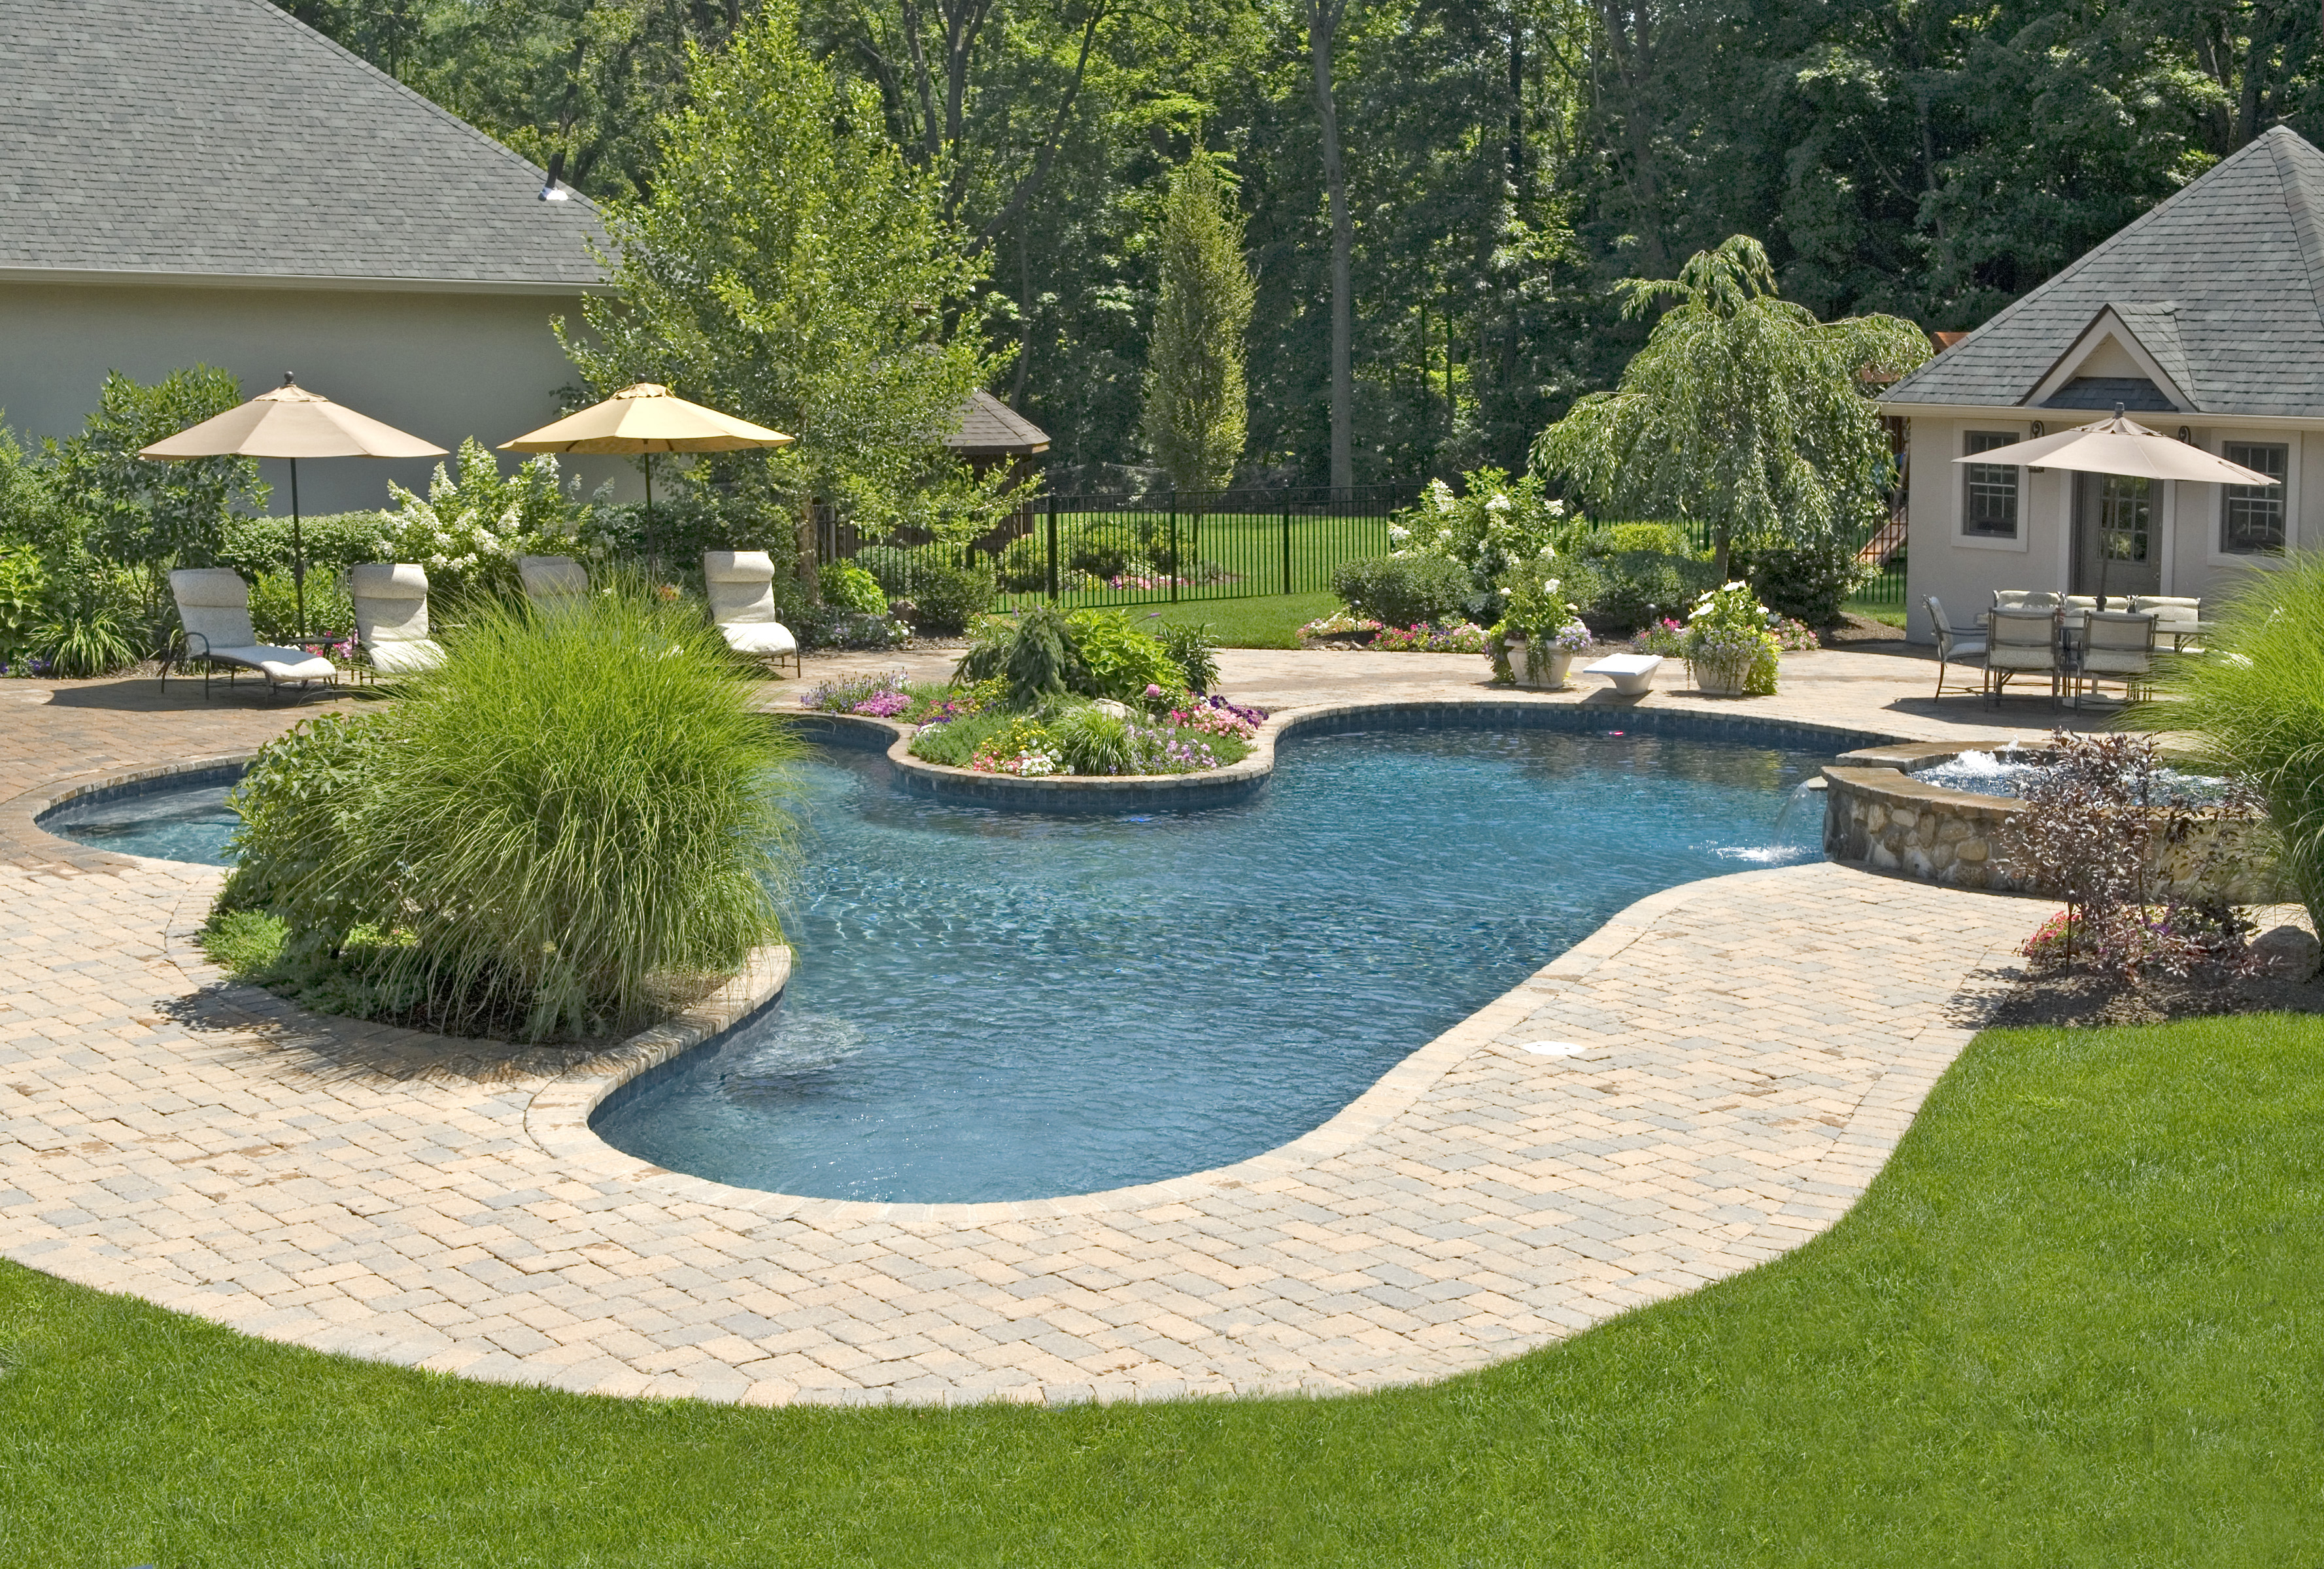 Backyard Ideas - Garden Design Ideas in Brisbane, Queensland on Backyard Designs  id=24946